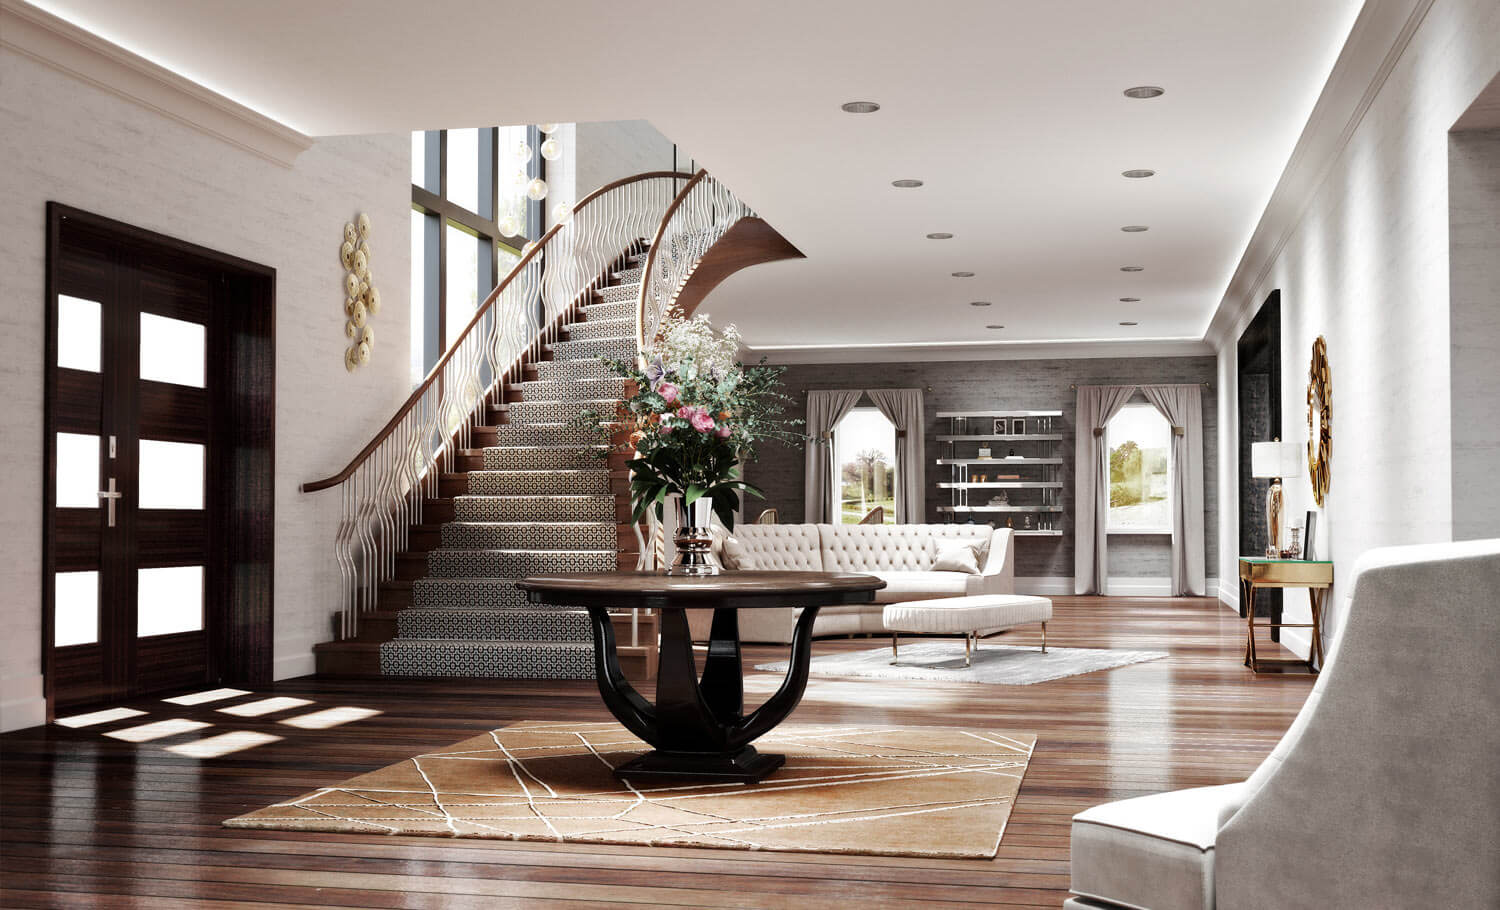 A luxurious entrance hall with feature wooden table at the centre and sweeping staircase to the left, all created in CGI by Image Foundry Studios